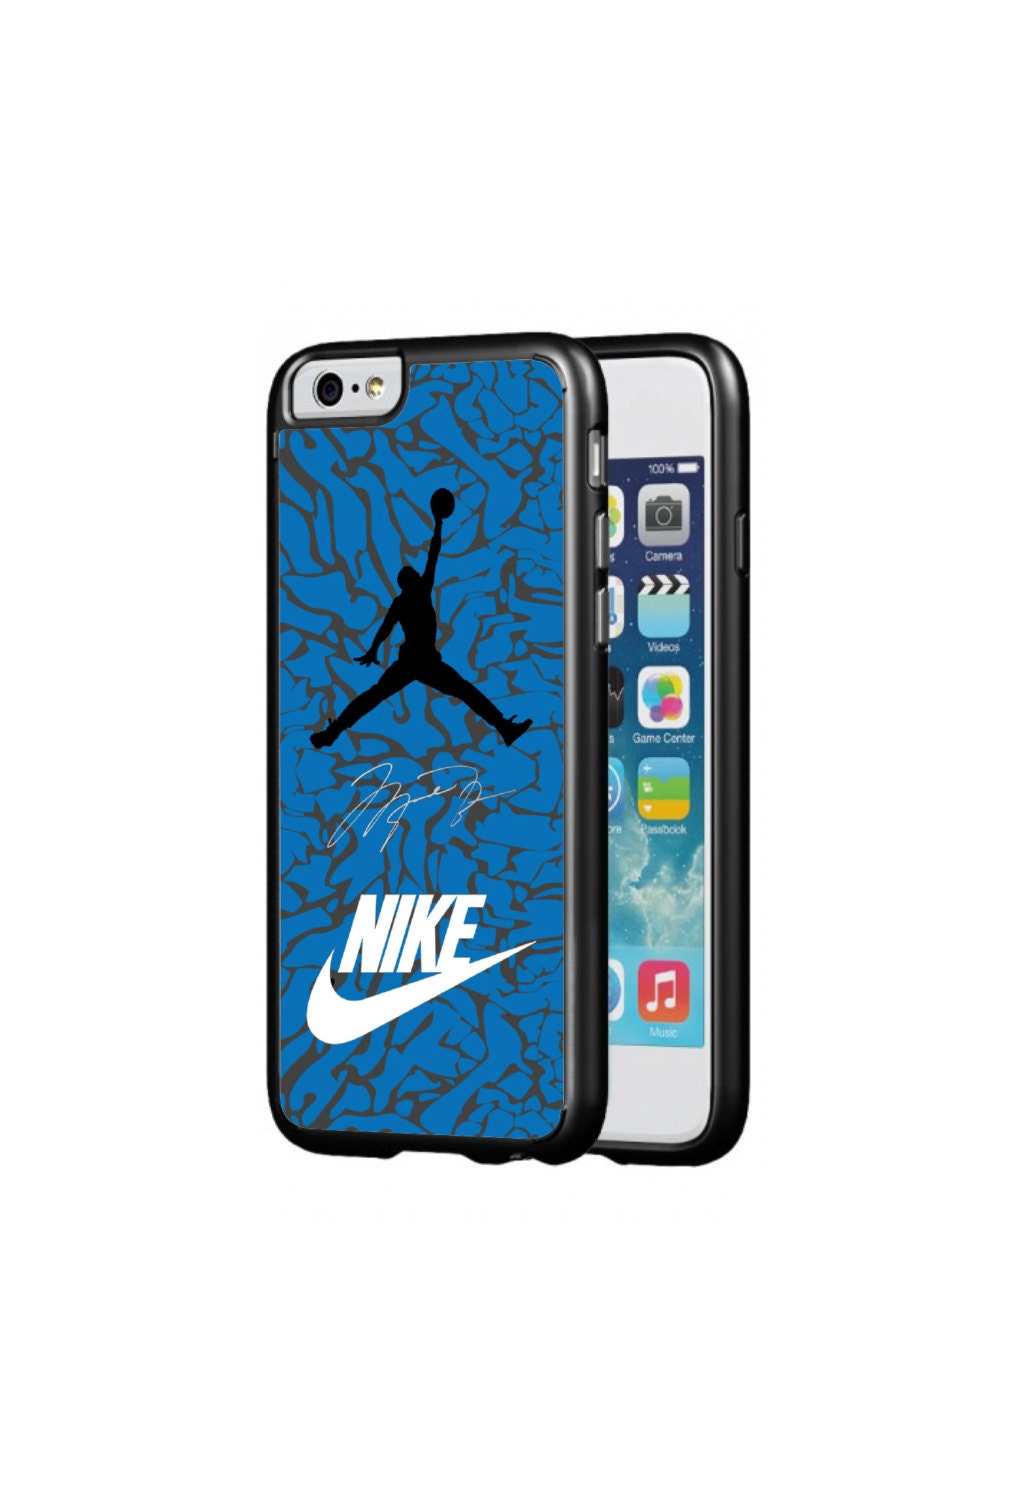 nike iphone 5s case nike blue air protective phone for iphone 5 5s 15768